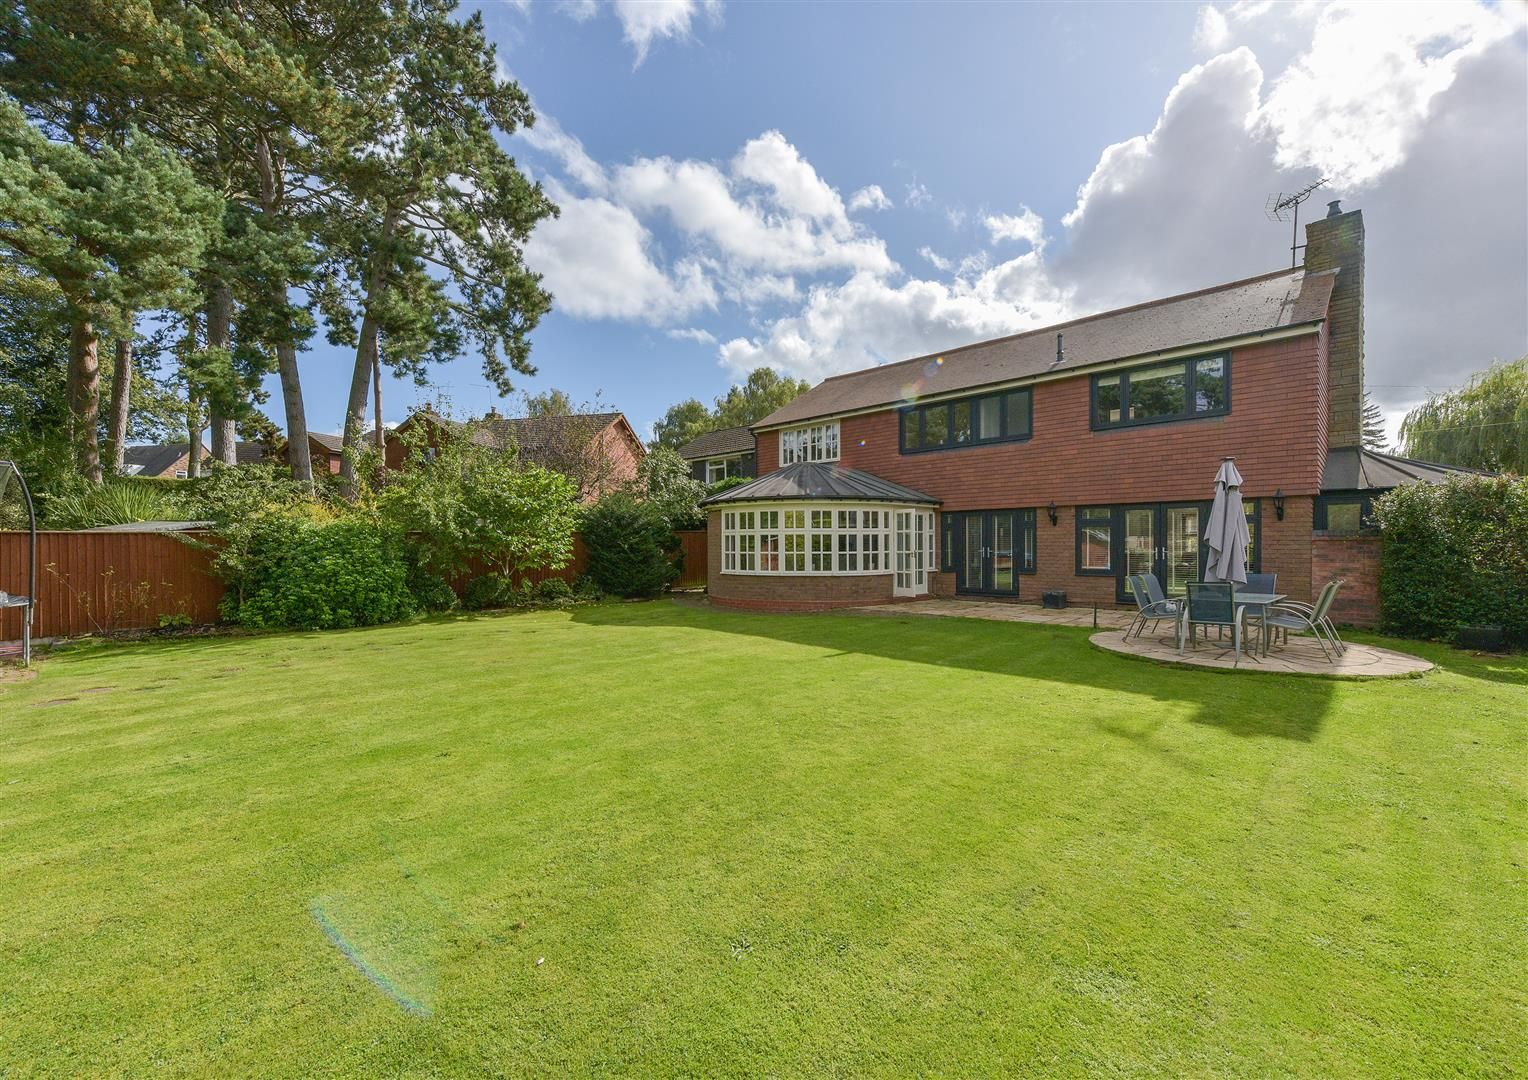 5 bed house for sale in Hagley 2